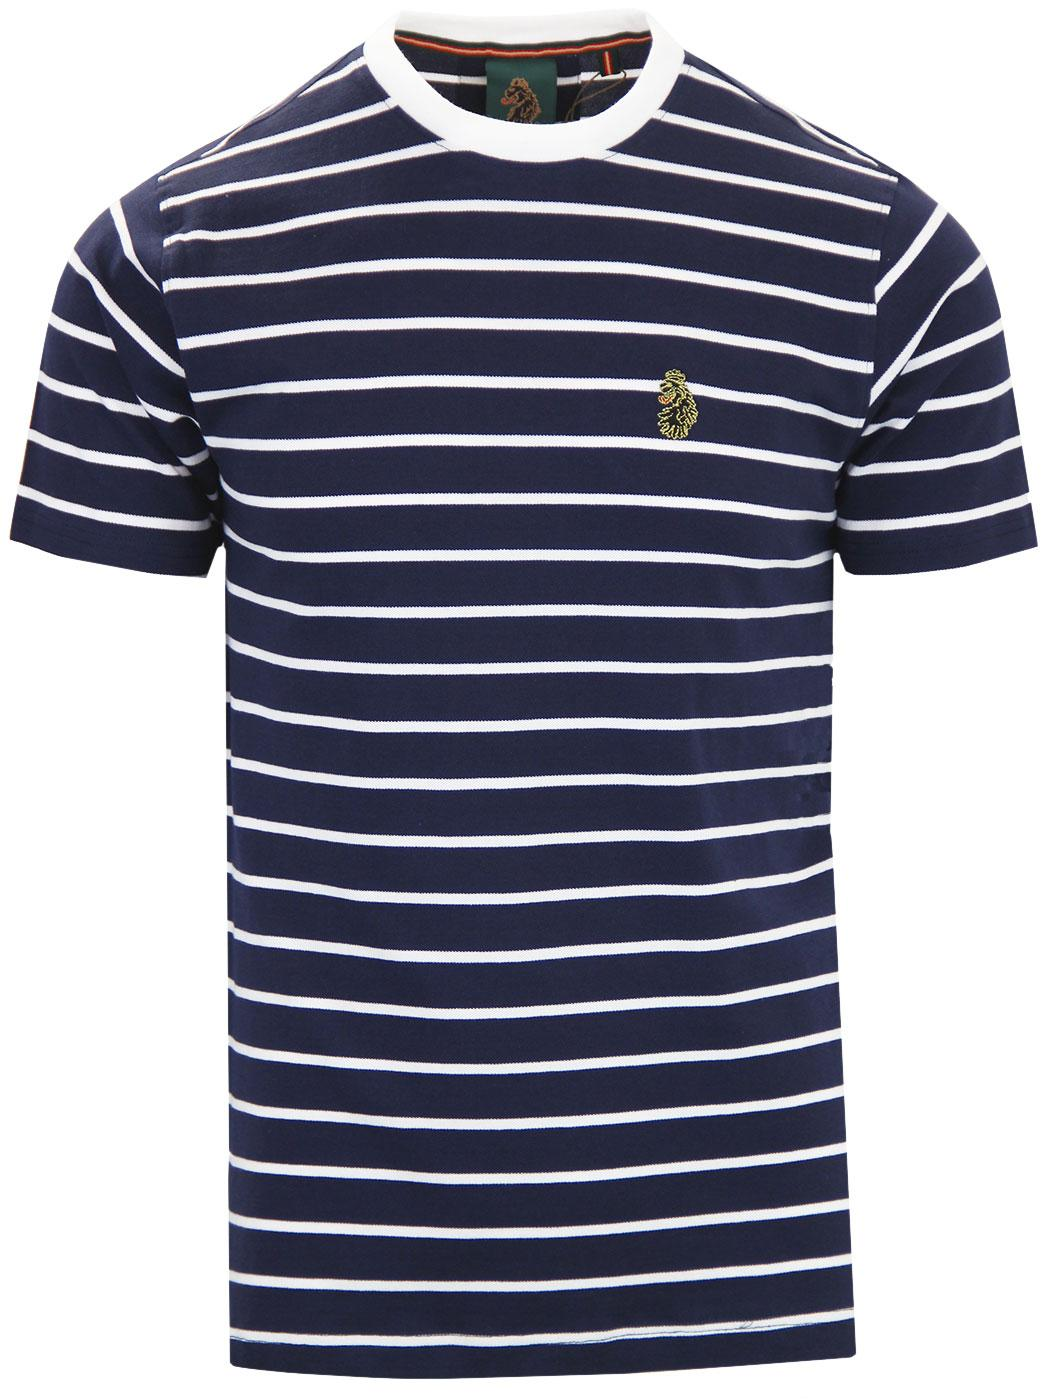 Finn LUKE 1977 Retro Indie Pique Stripe T-shirt